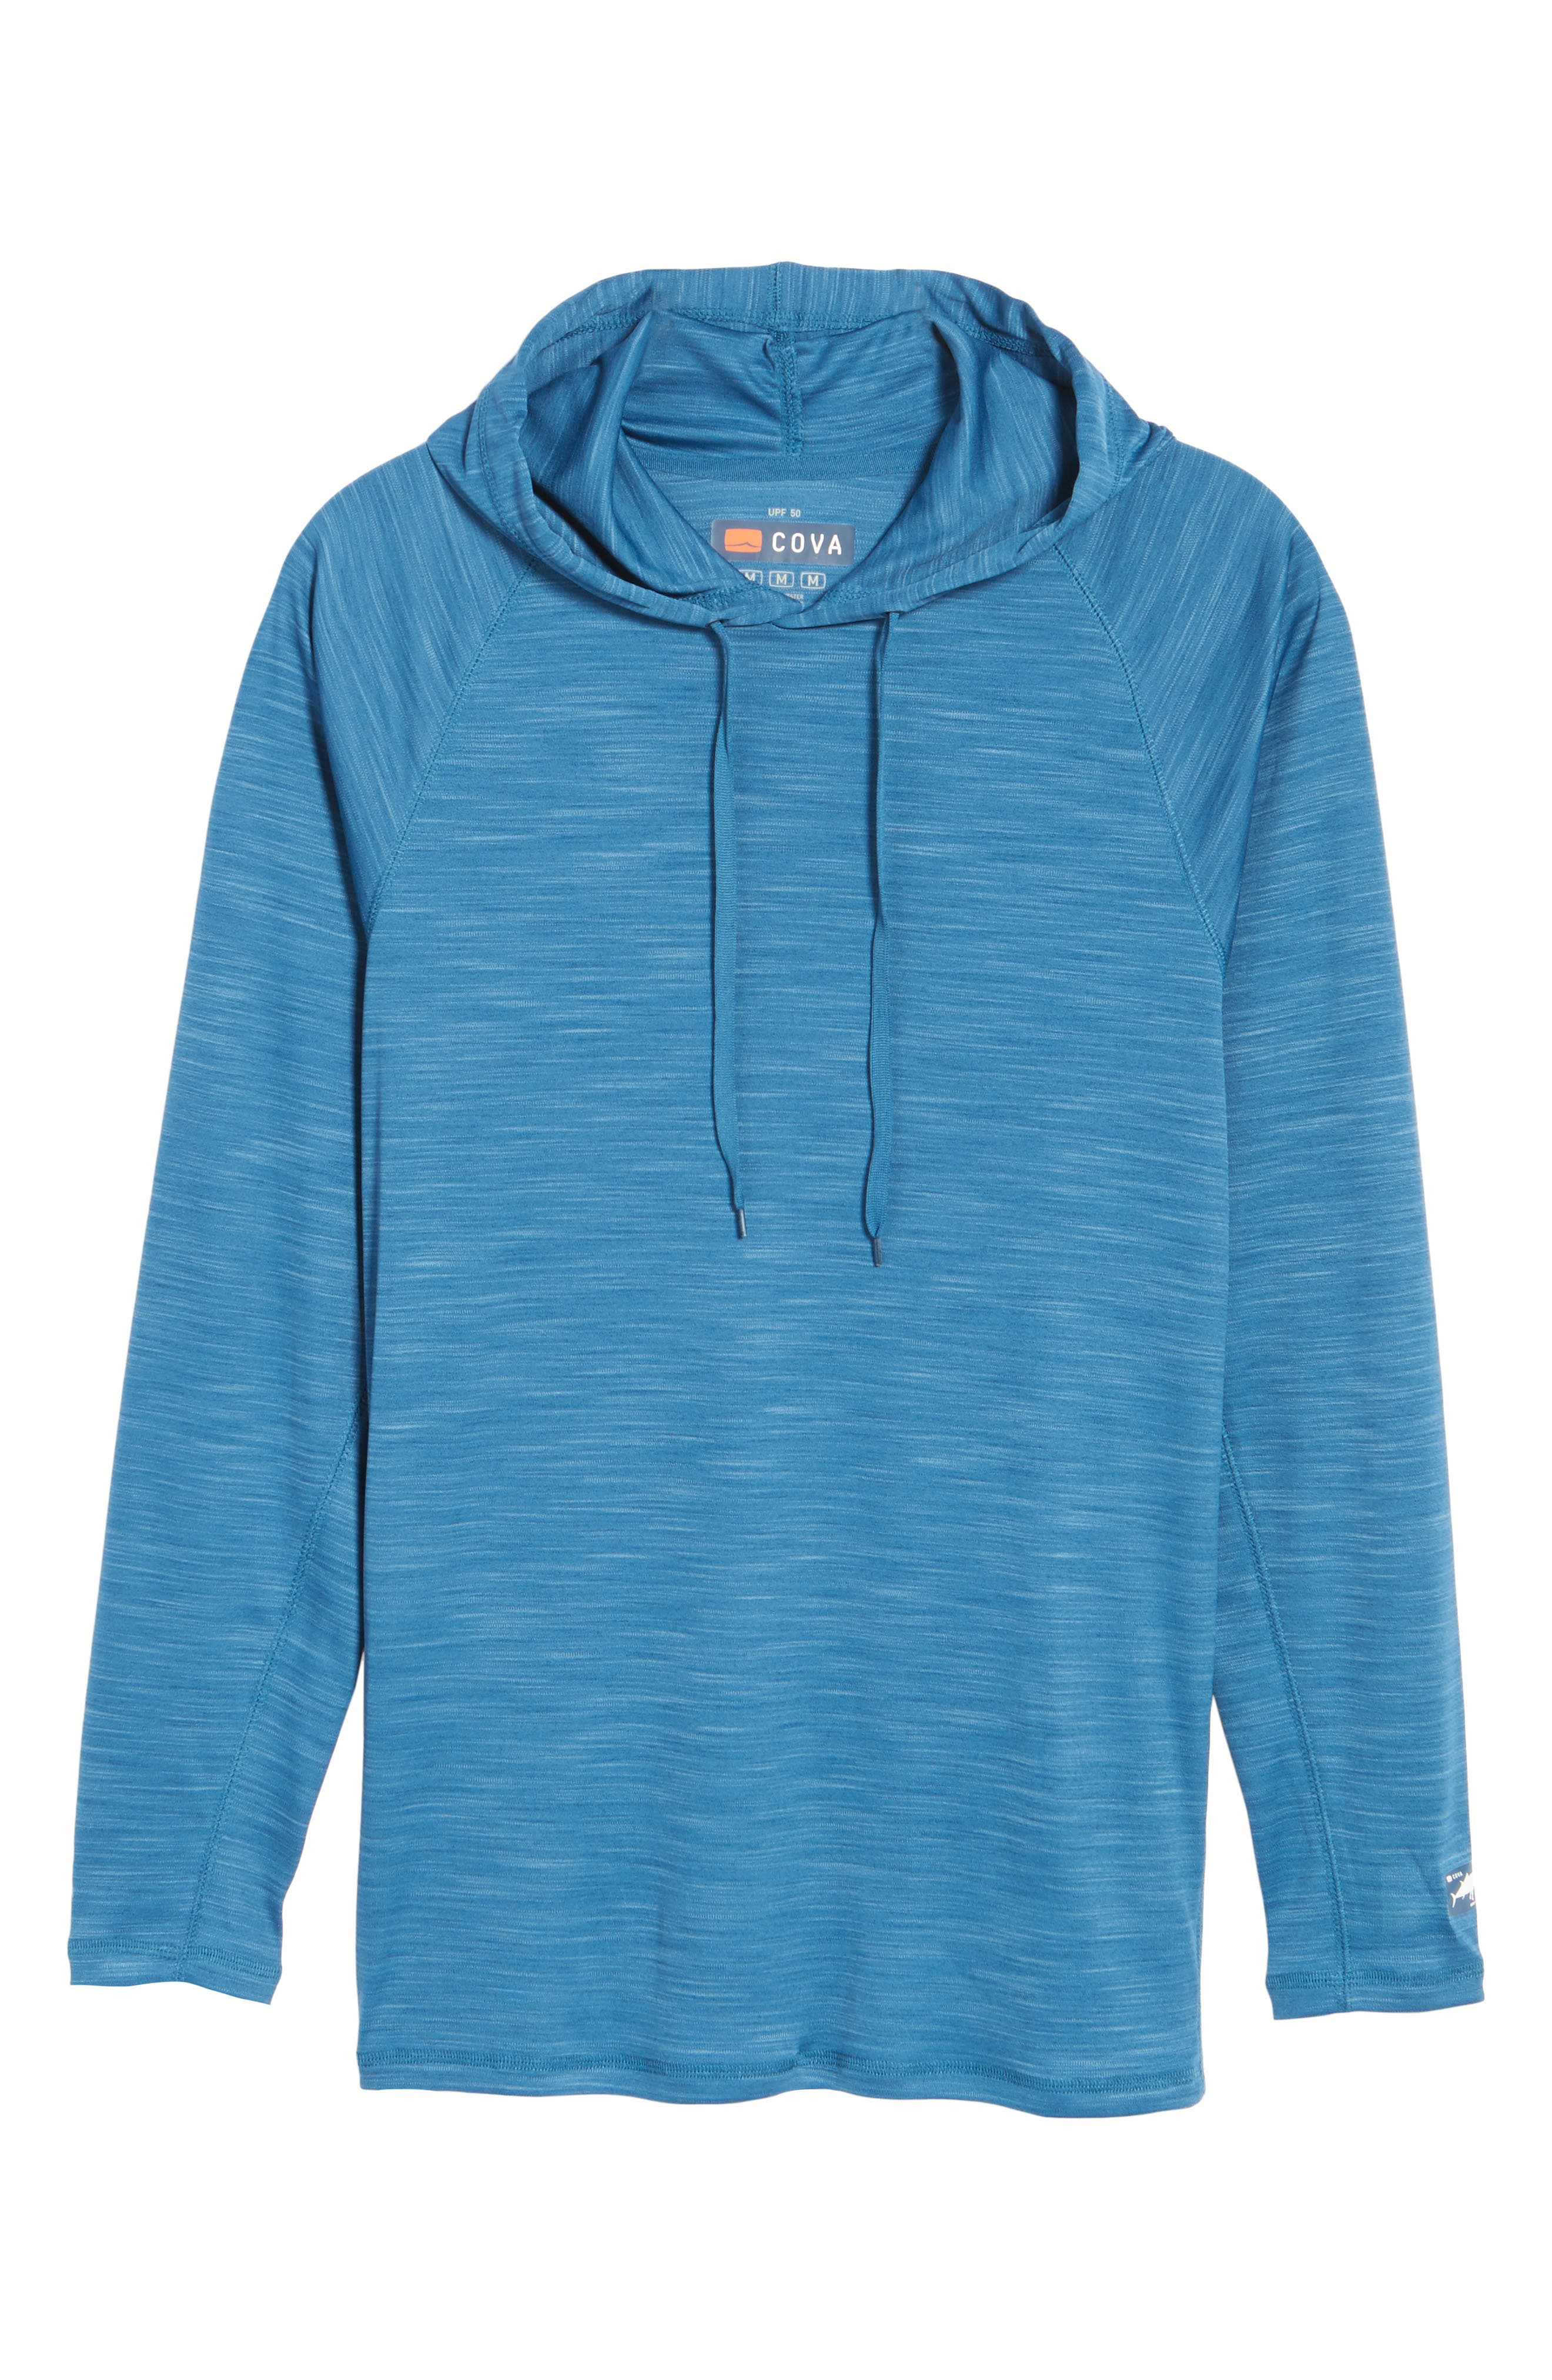 Undercover Hooded Long Sleeve Performance T-Shirt,                             Alternate thumbnail 12, color,